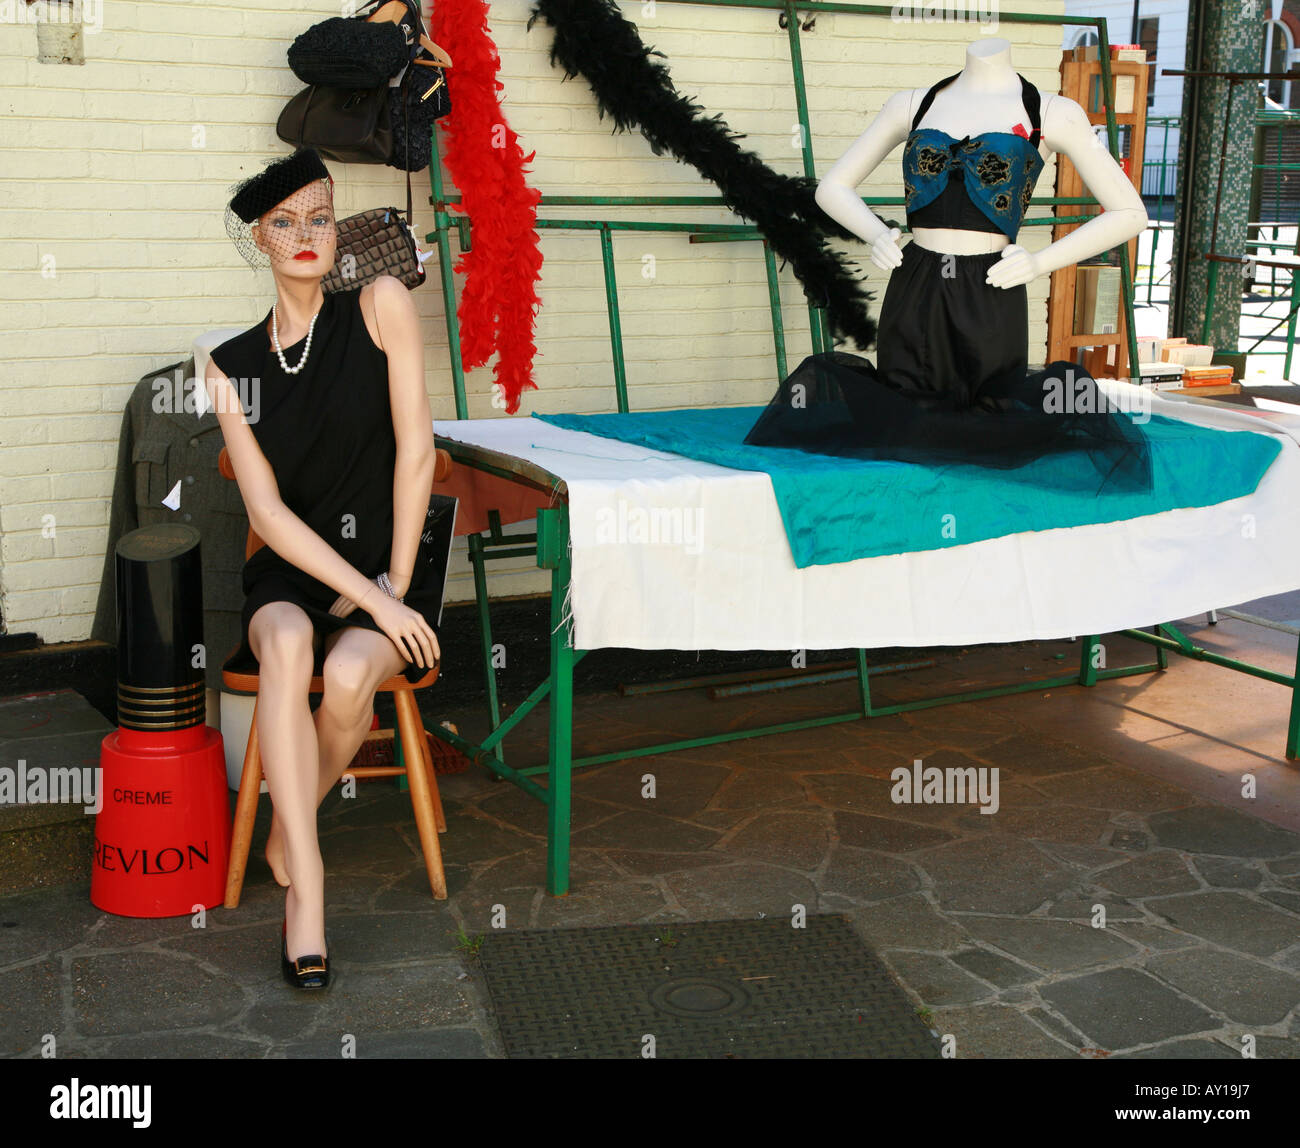 Glamorous model of a glam model  and her headless friend on Greenwich market - Stock Image